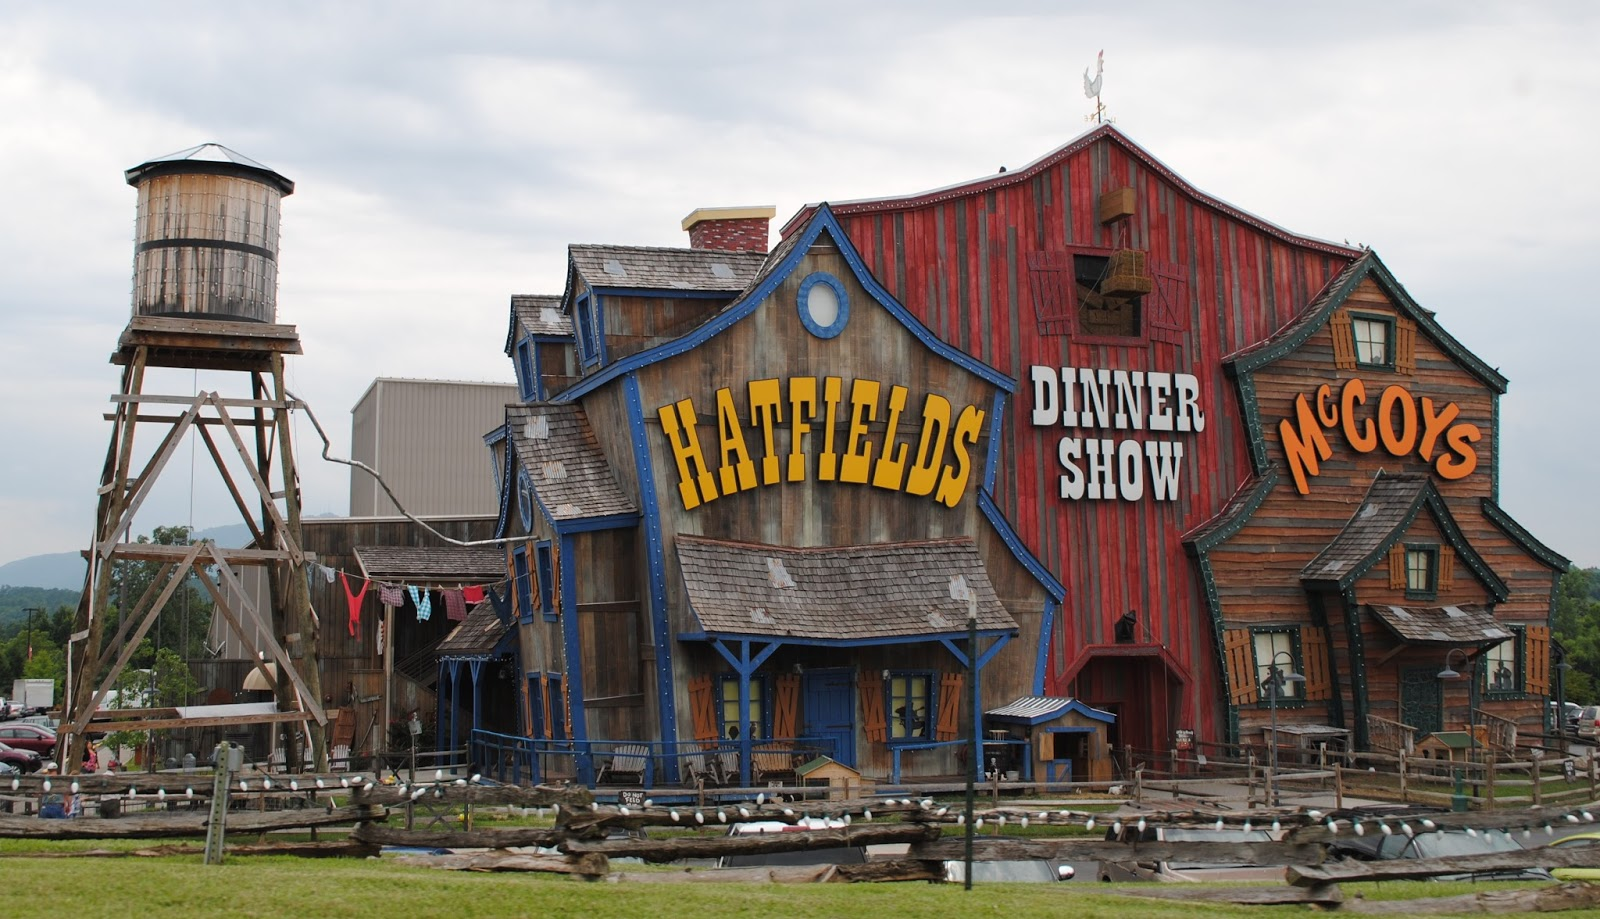 Hatfield McCoy dinner show Pigeon Forge.